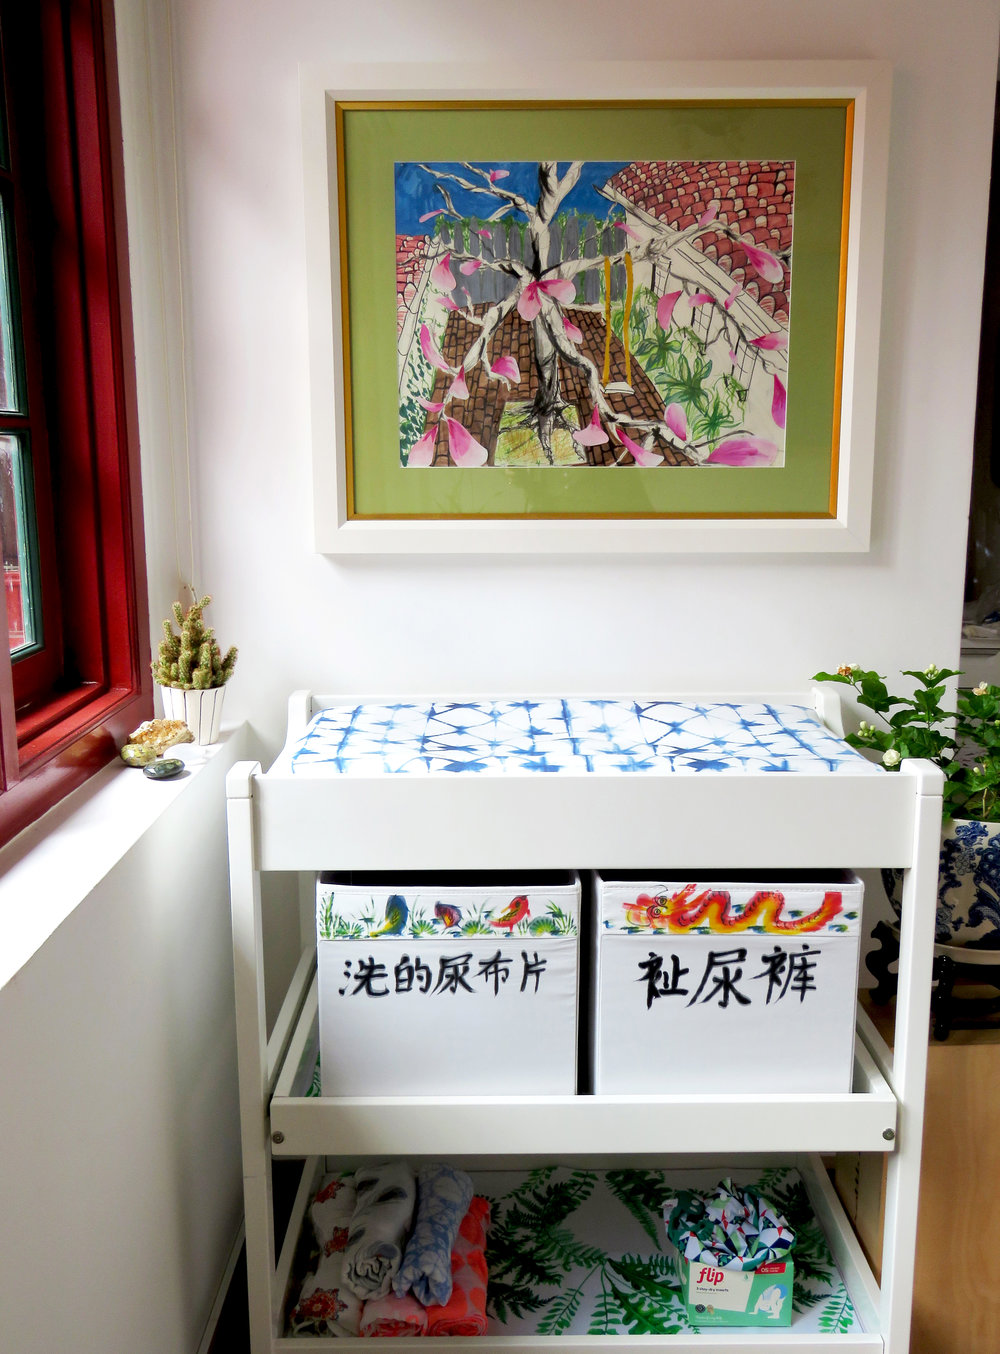 up-cycled changing table, Mandarin calligraphy-labeled boxes for cloth diapers and jasmine plant.